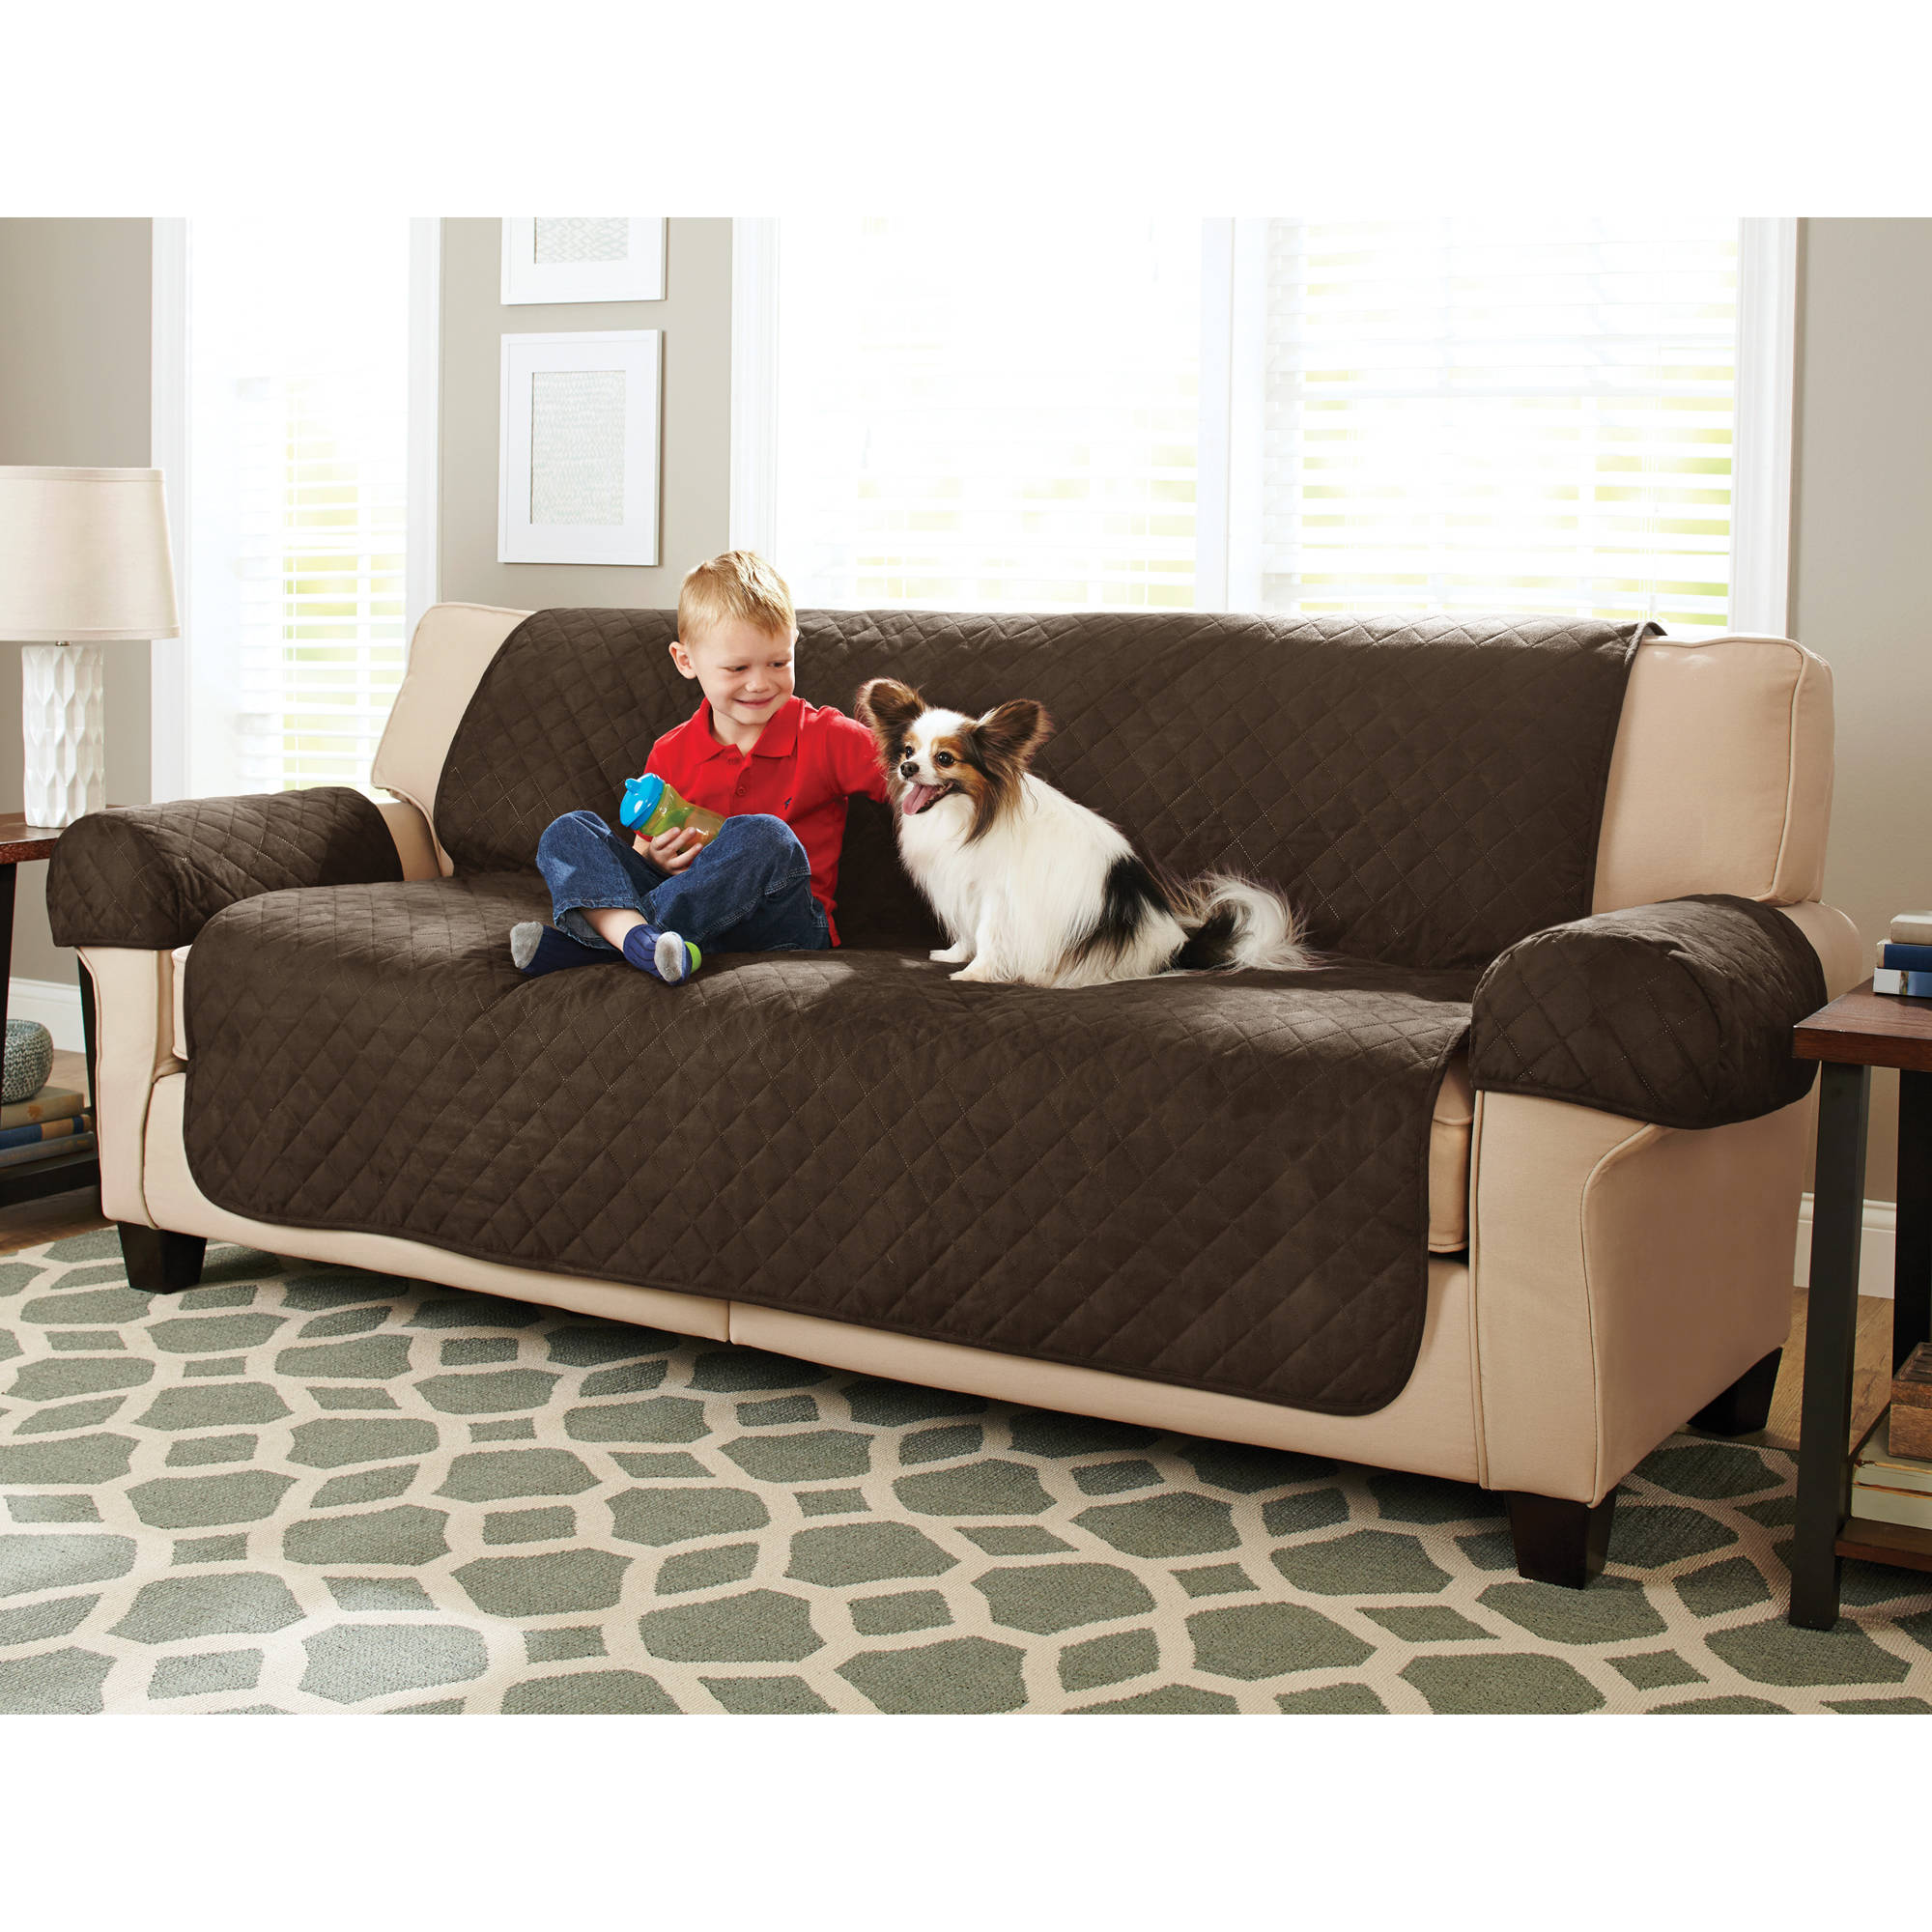 Better Homes And Gardens Waterproof Non-Slip Sofa